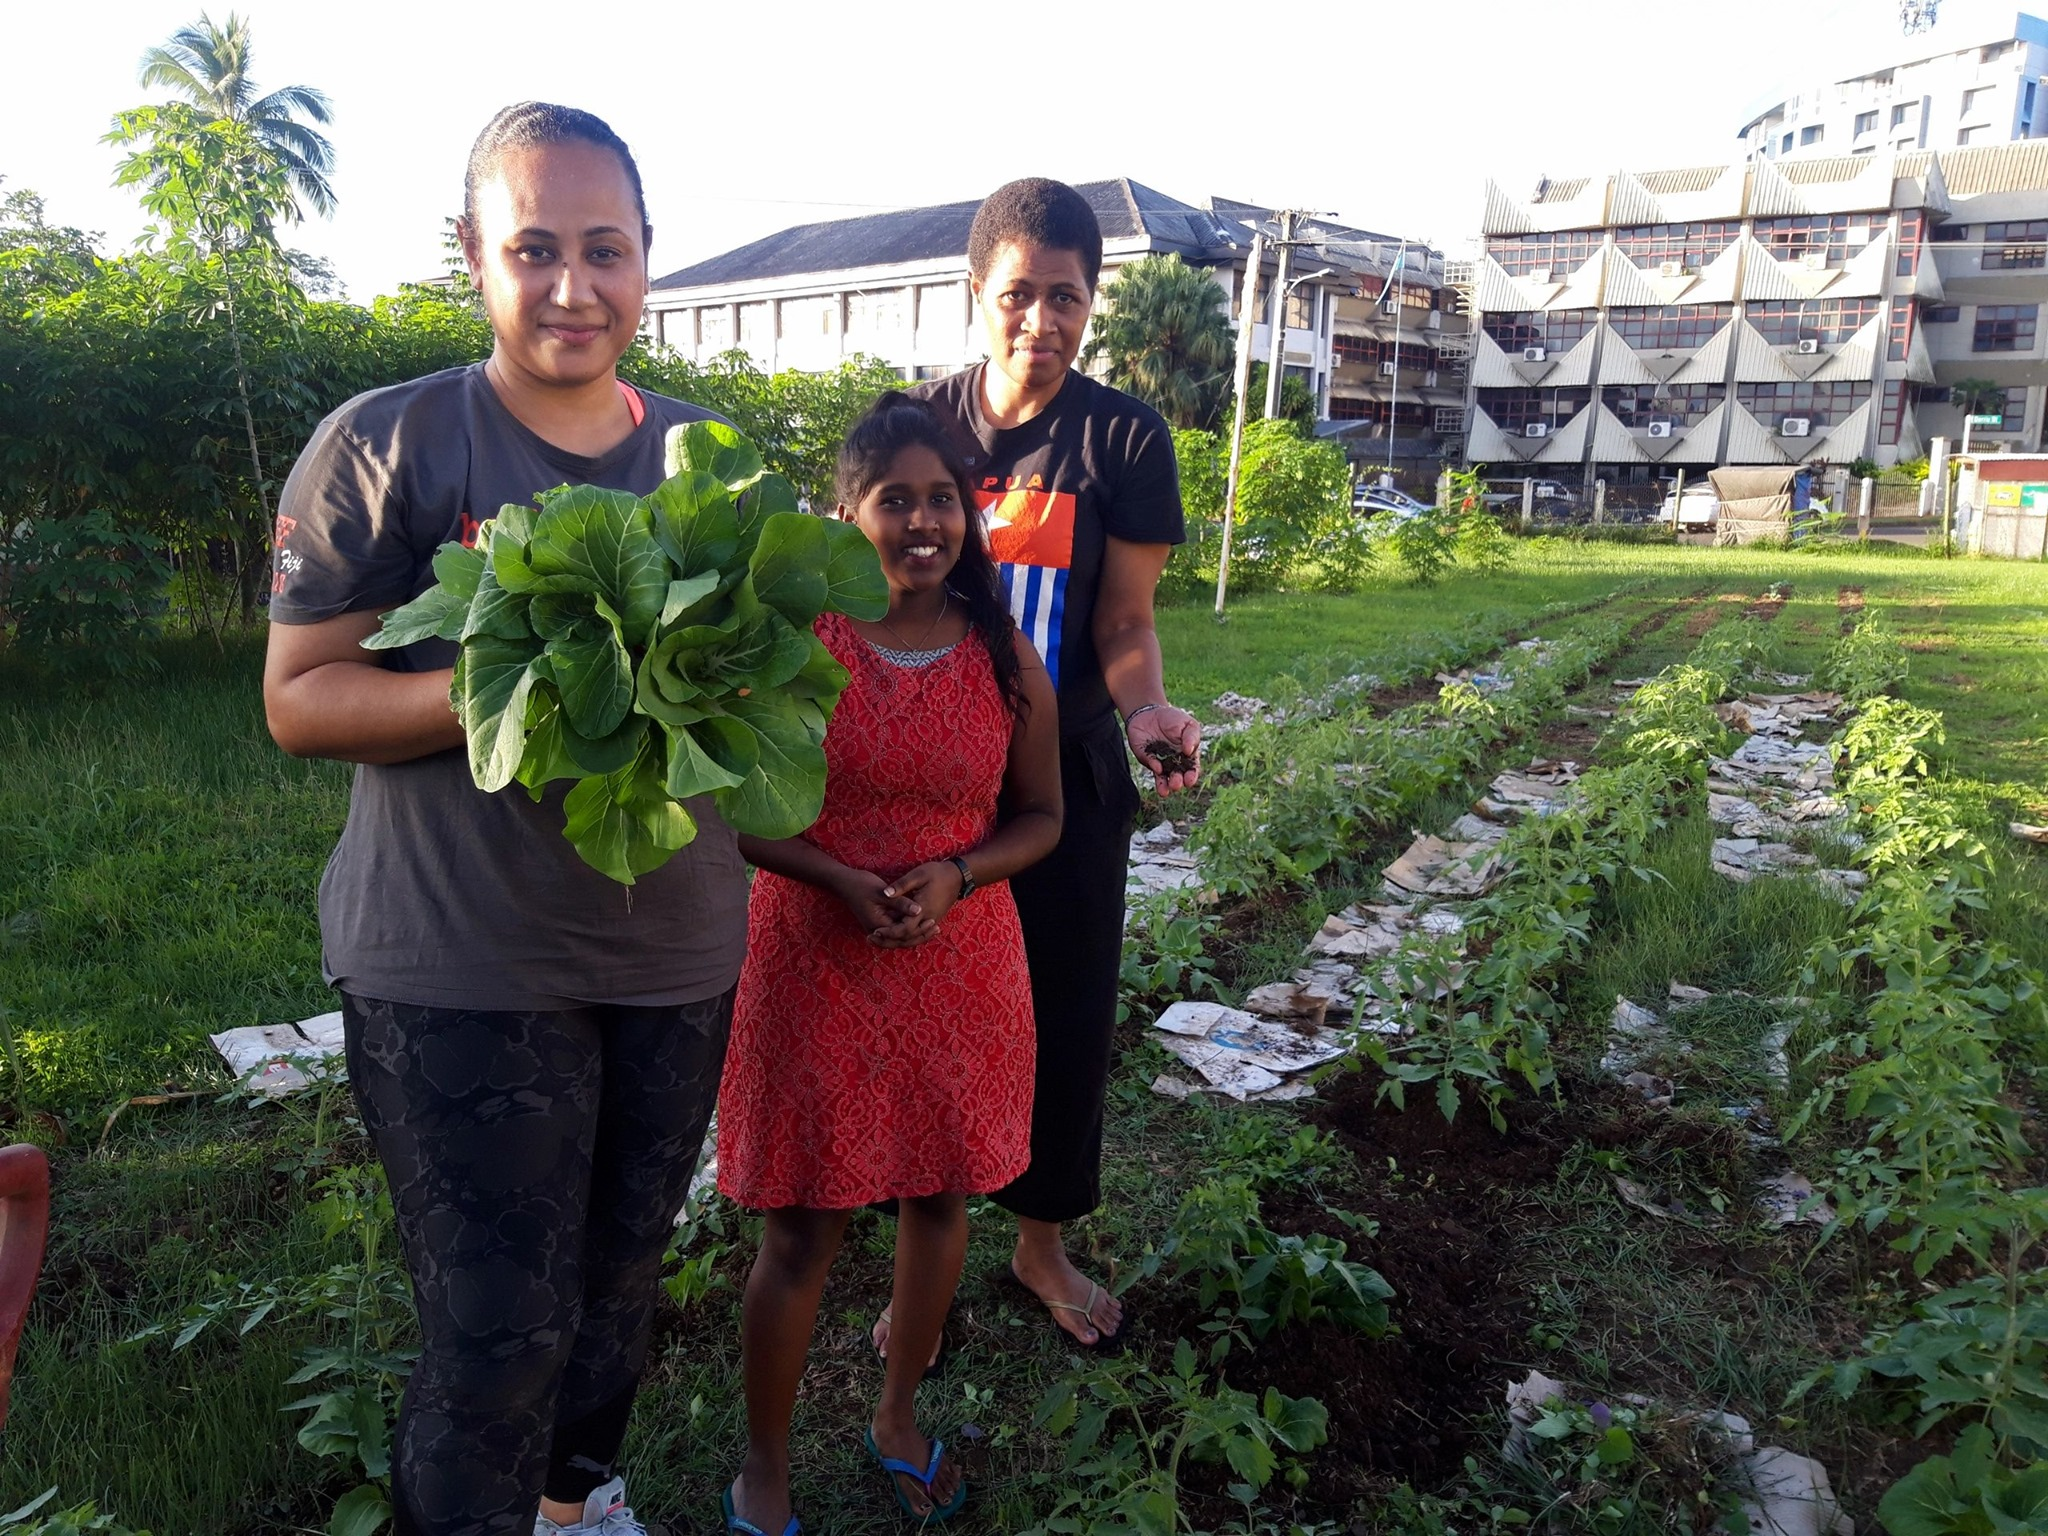 Staff of the Pacific Conference of Churches (PCC), a global partner of PC(USA) in Suva, Fiji, planted a vegetables garden by their headquarters, right in the heart of Suva. It is an act of witness to show care for the Creation and promote food security in time of lockdown. Photo credit PCC.